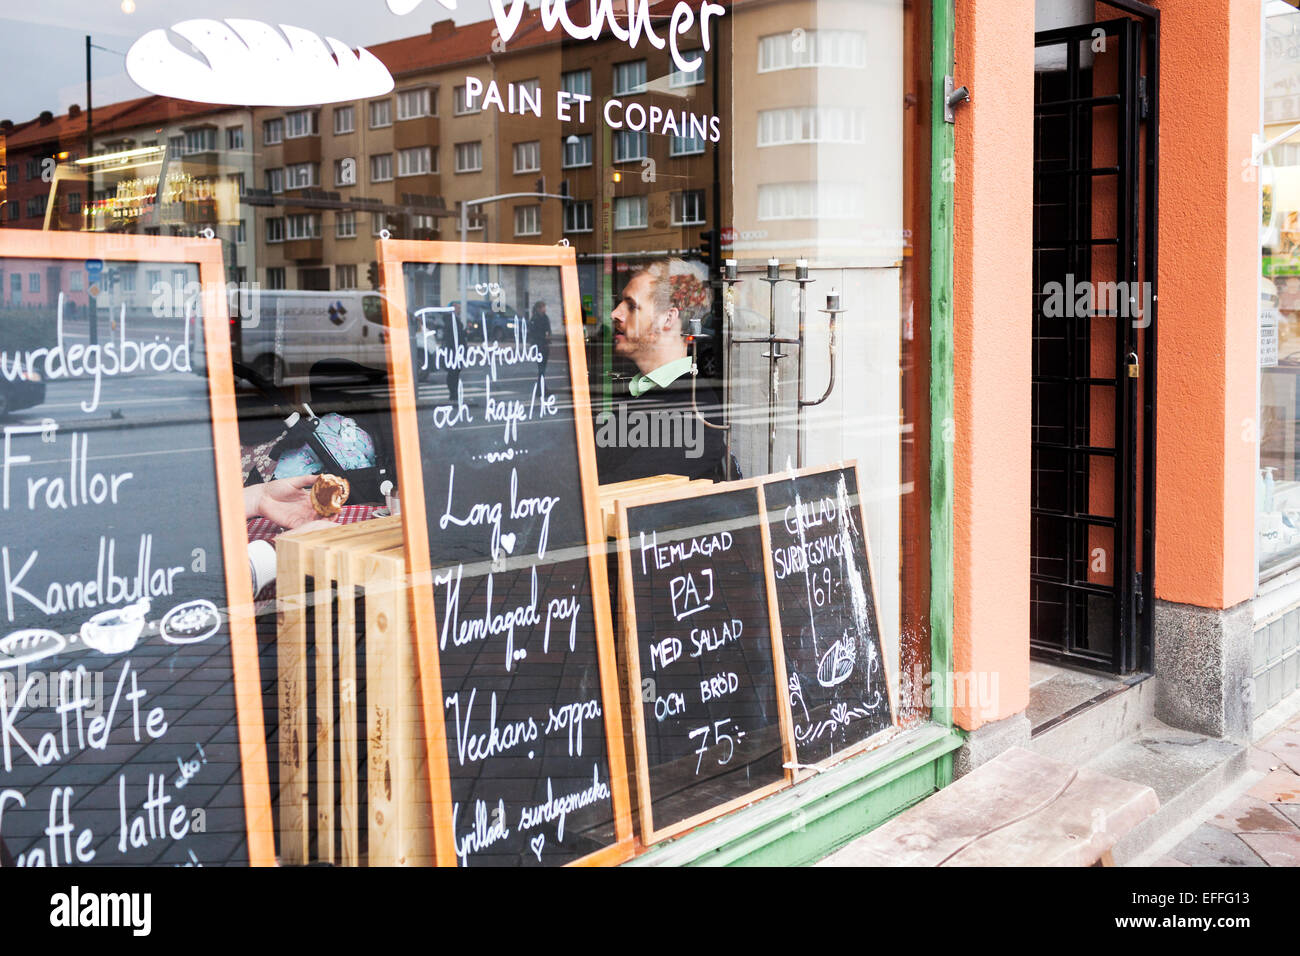 View of man in cafeteria through glass wall with blackboards - Stock Image